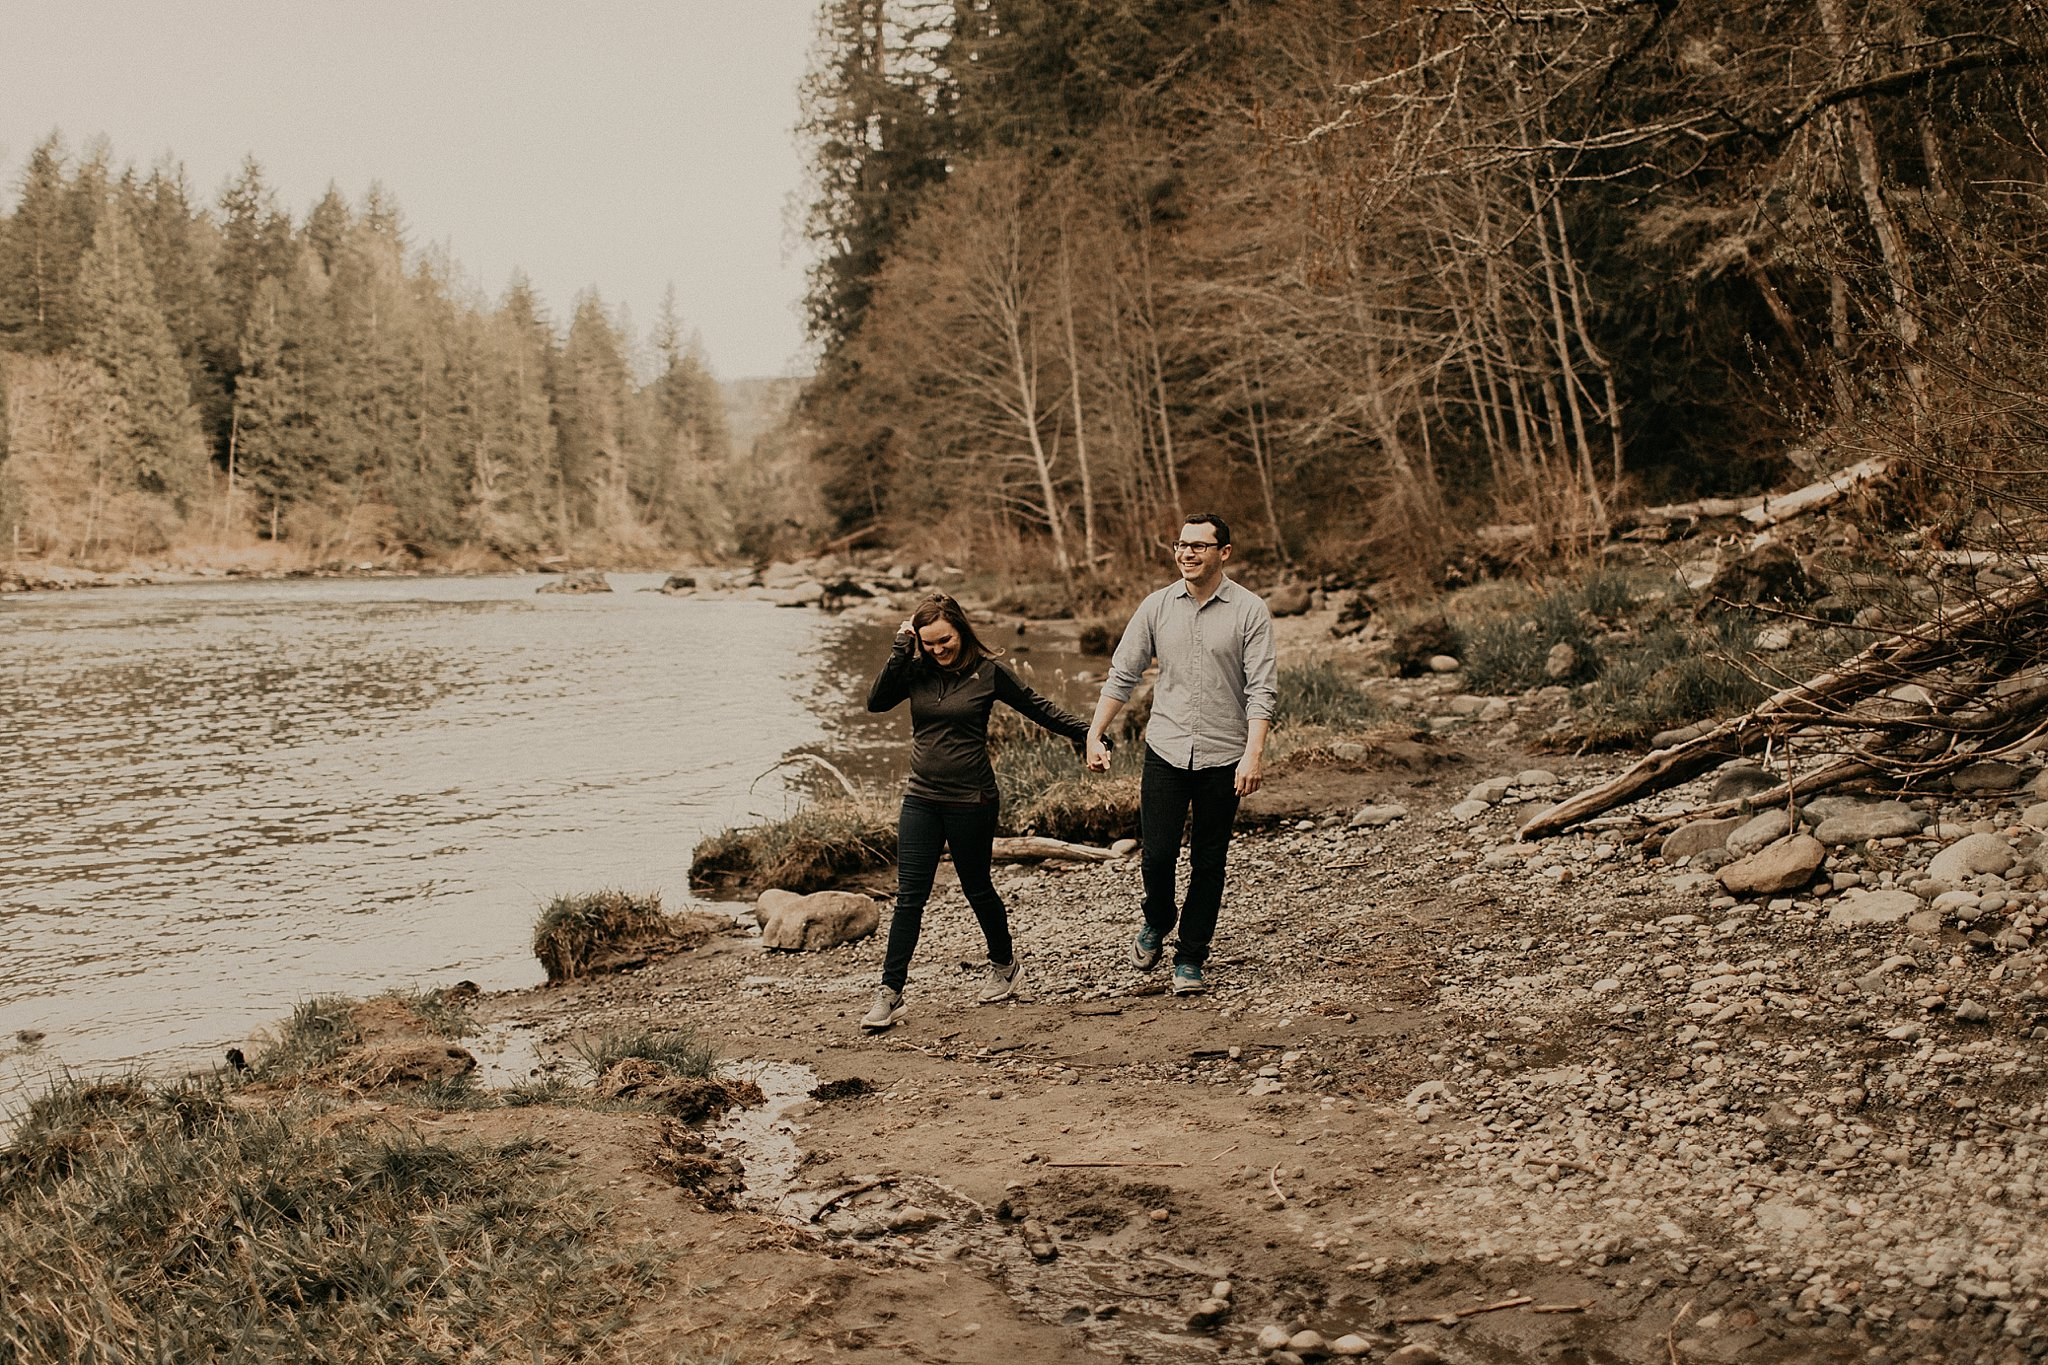 samantha_mcfarlen_bellingham_washington_engagement_photography_seattle_wedding_photographer_0684.jpg